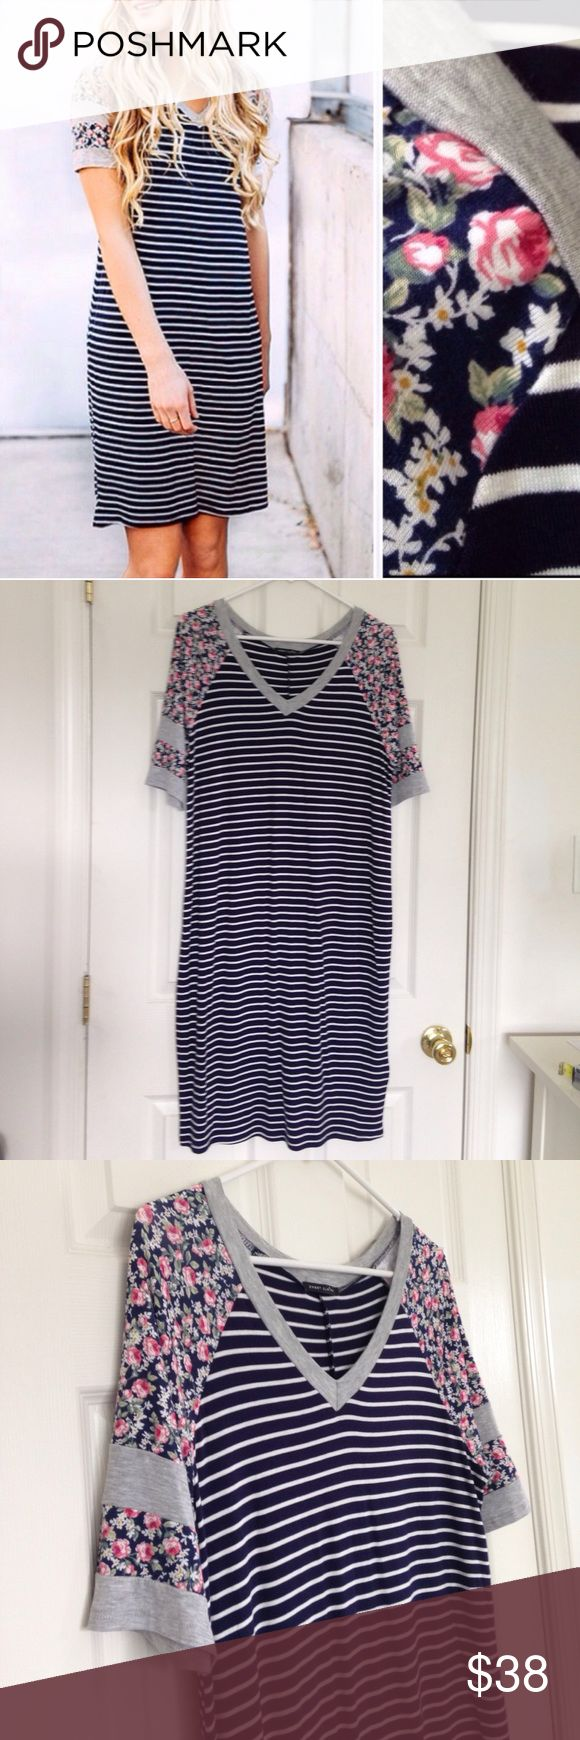 """Black & White Stripe Floral Dress Brand new without tag - got online without tag. Black and white striped Floral - sleeves v-neck midi dress. Soft and stretchy. 96% rayon and 4% spandex. Measurement laying flat: bust: 19"""" length:37"""" Large(8-10) Sweet Claire Dresses Midi"""